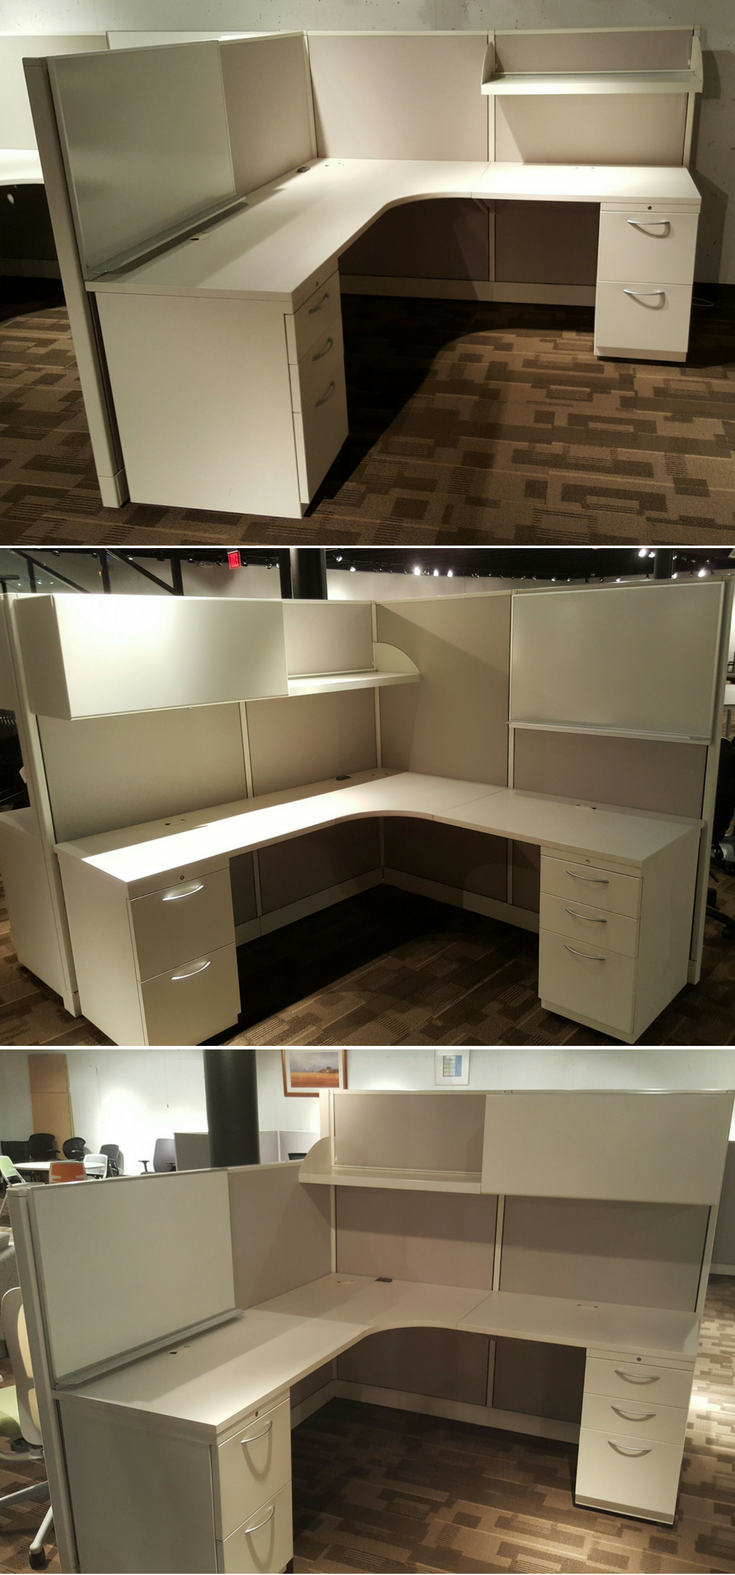 Used Cubicles In Kansas City. This Is The Same Allsteel Concensys Cubicle  Inventory Shown 3 Ways. The Size Of Each Cubicle Is 6 X 6.